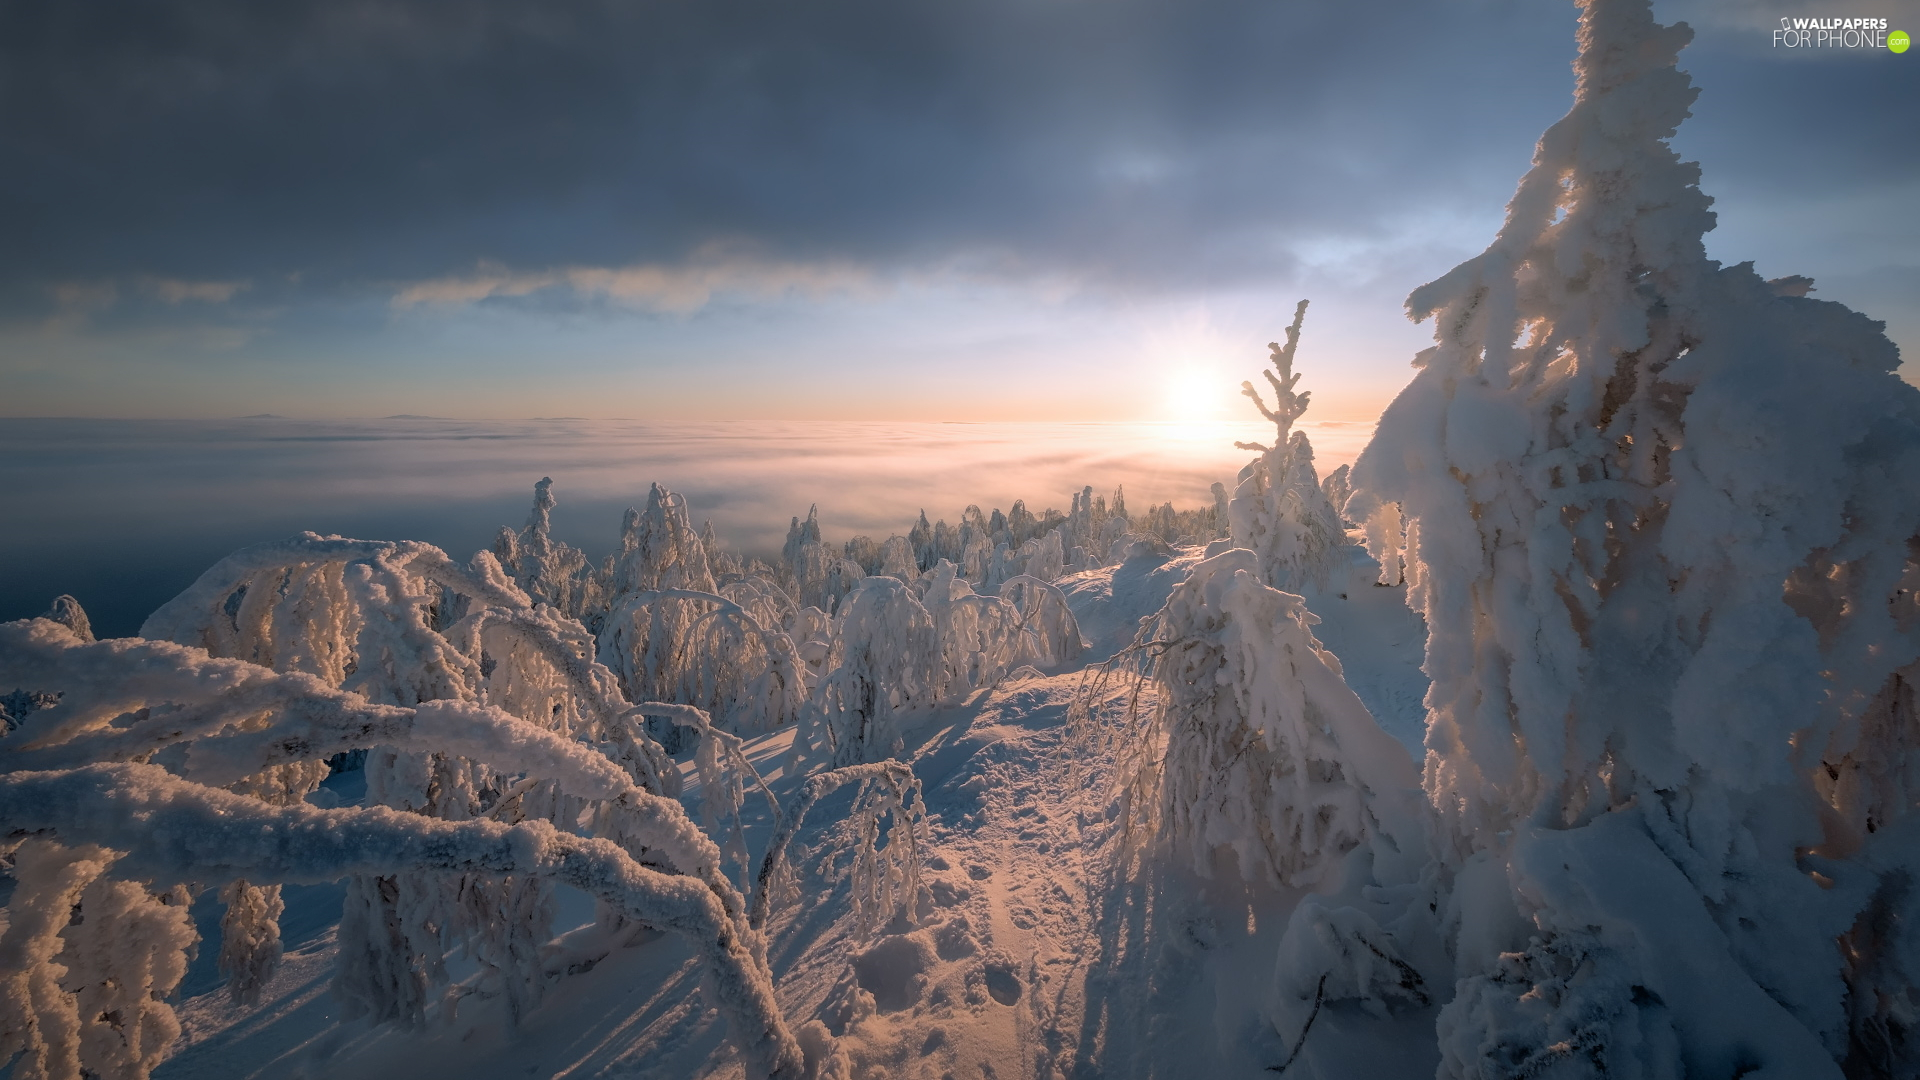 trees, winter, Sunrise, Fog, viewes, Snowy